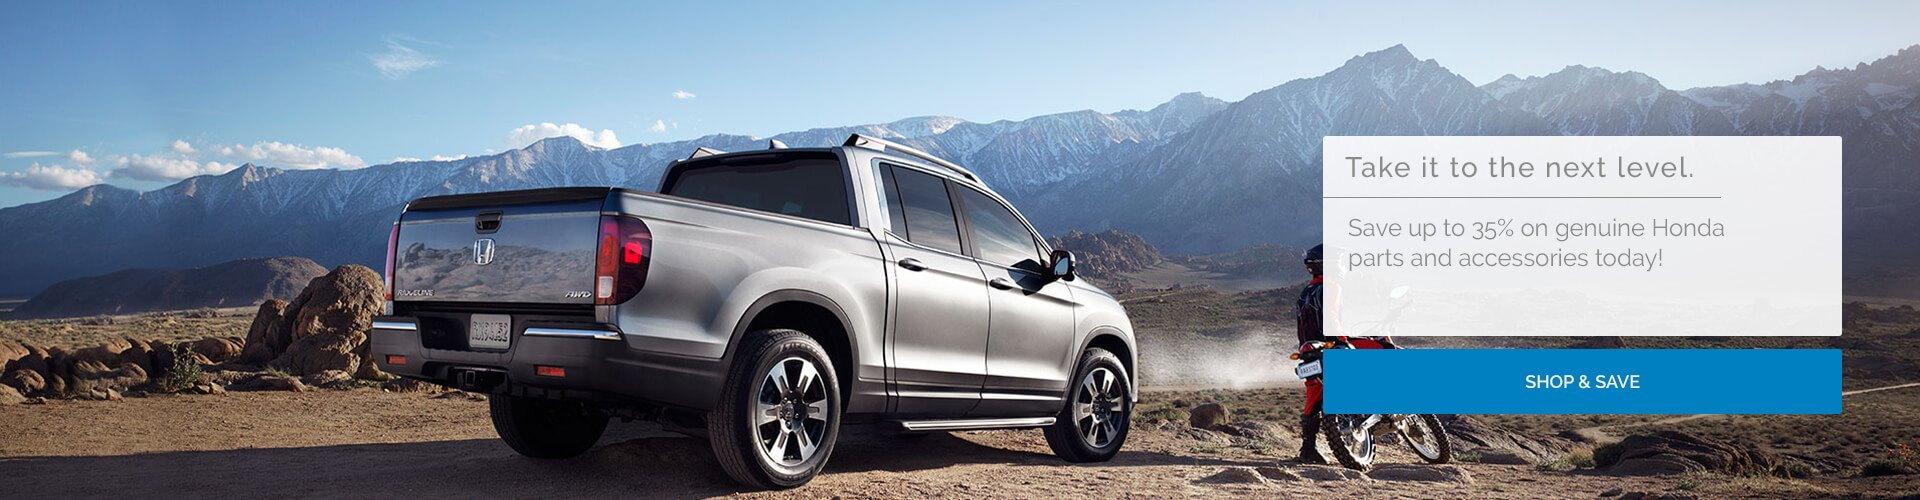 Genuine Honda Ridgeline Parts and Accessories